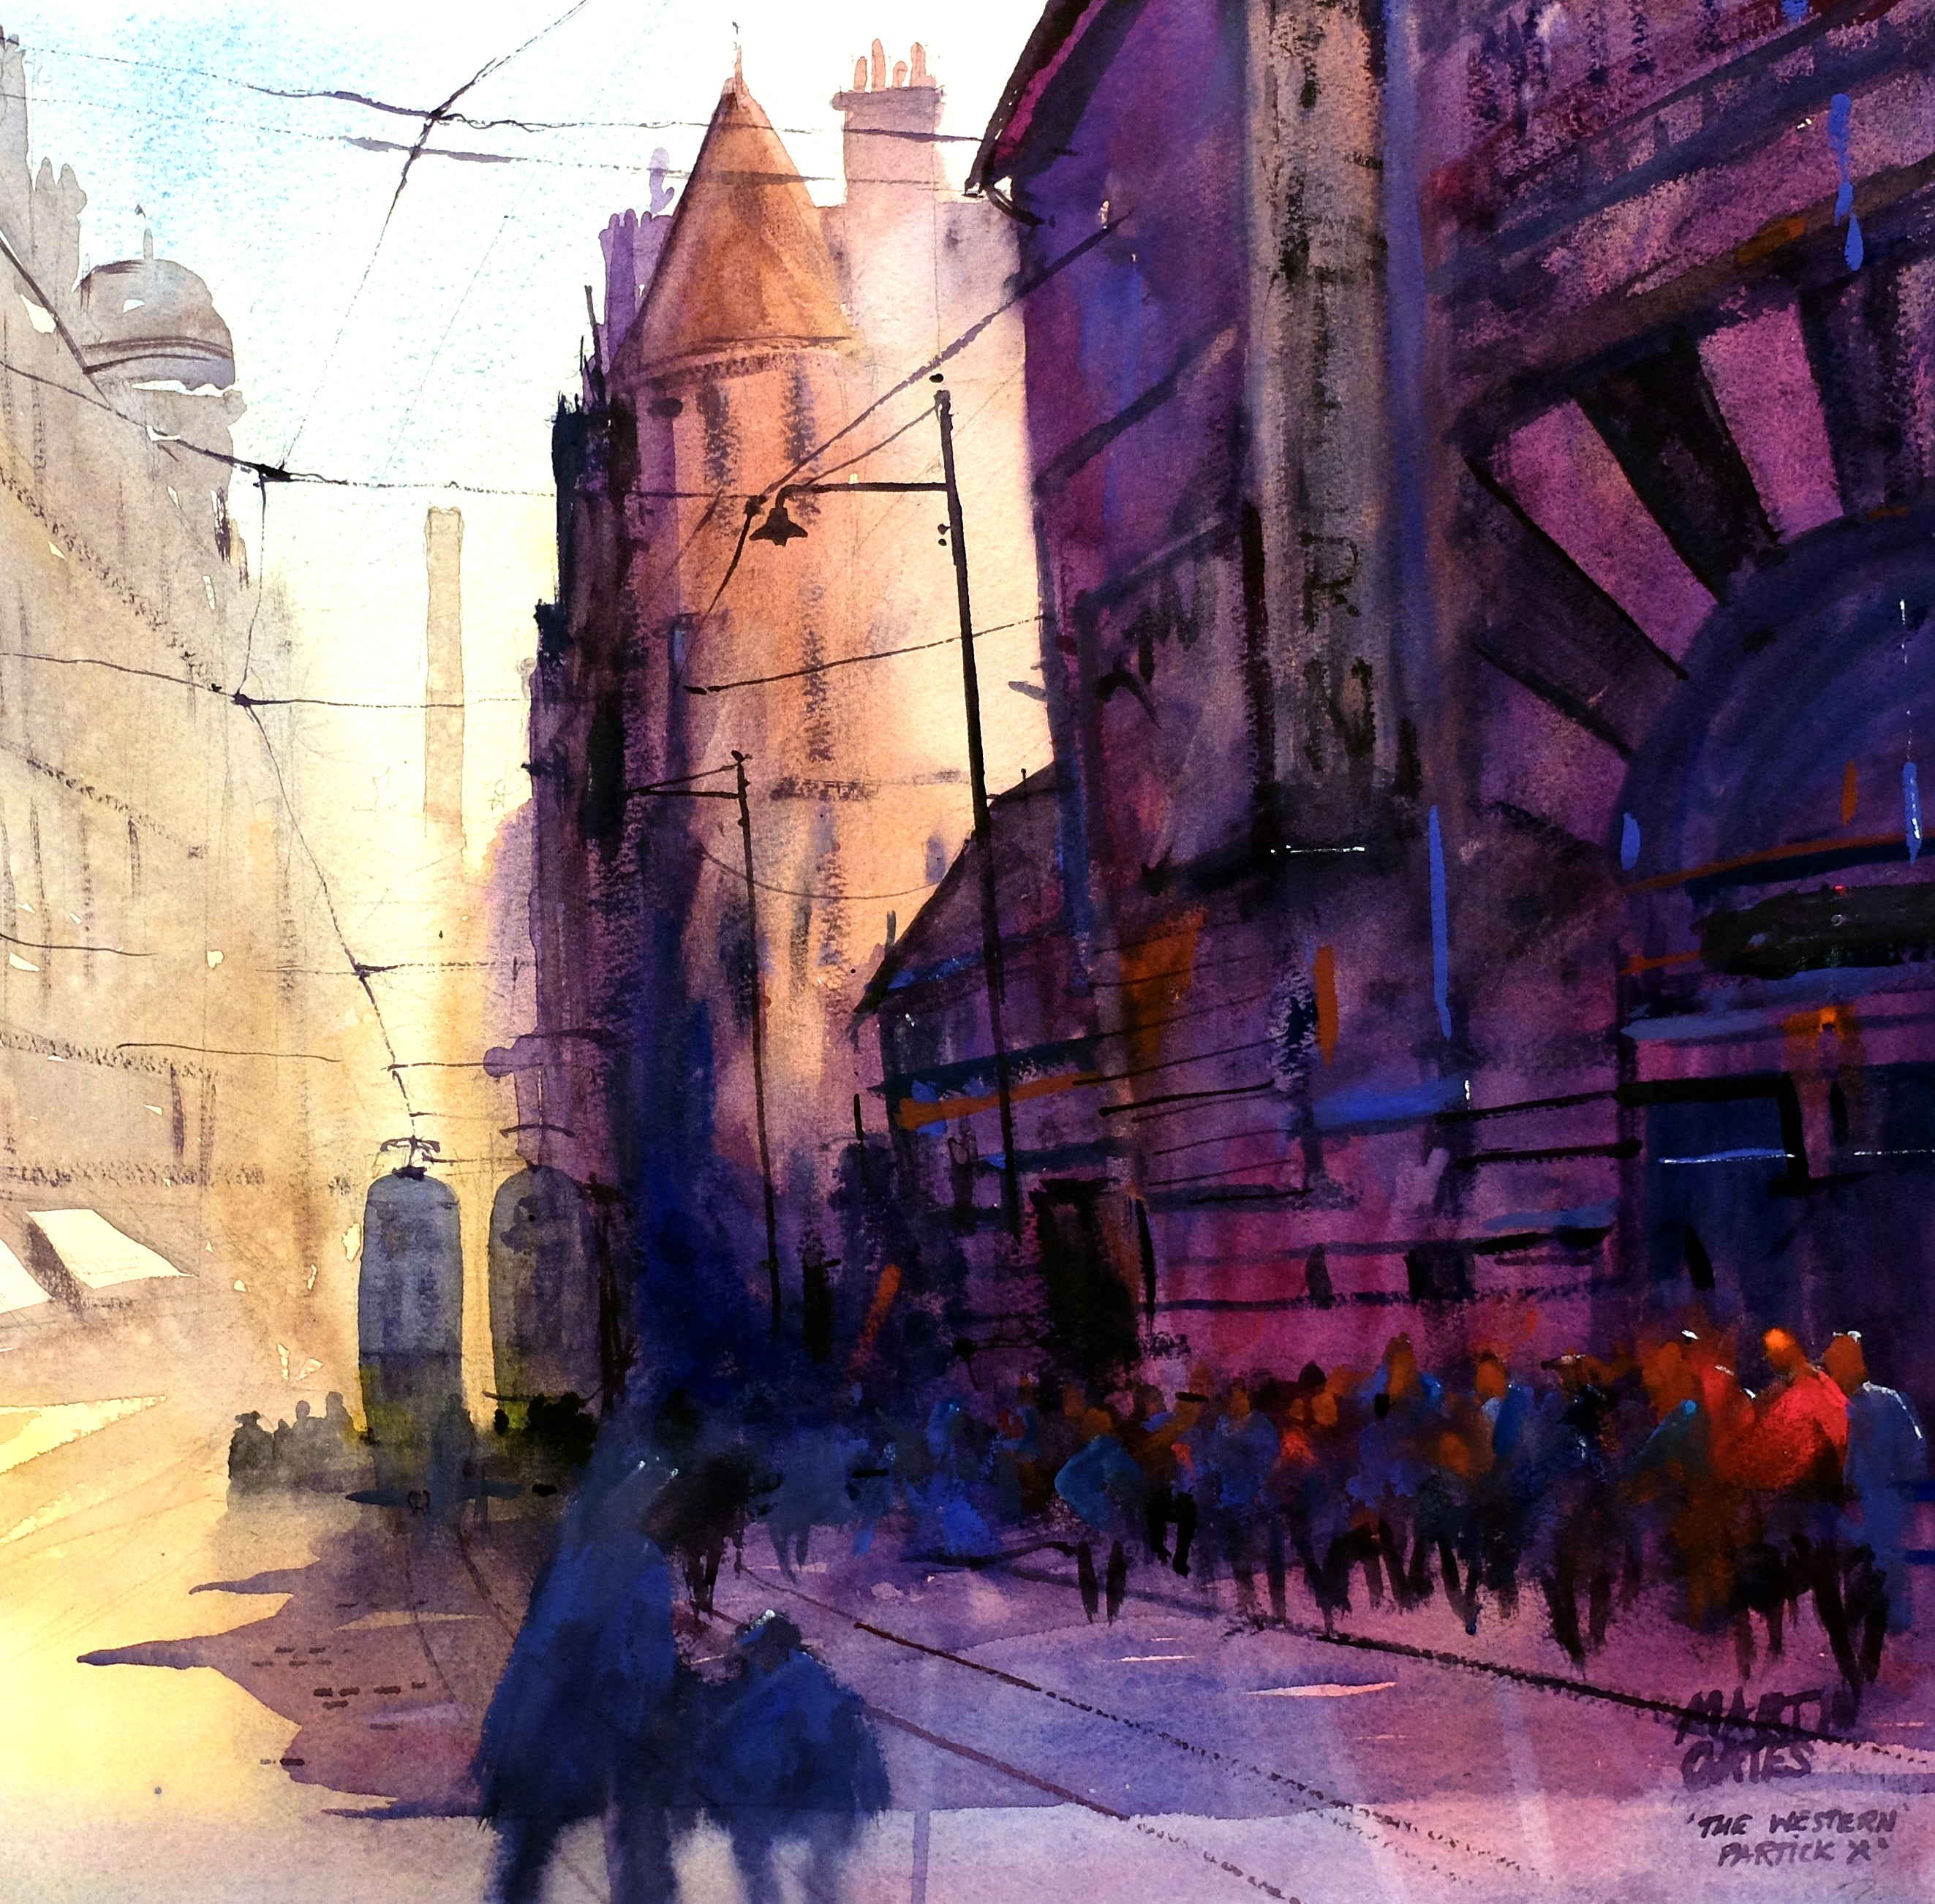 The Western Cinema Partick X  . Original watercolour by Martin Oates 48 x 48cm